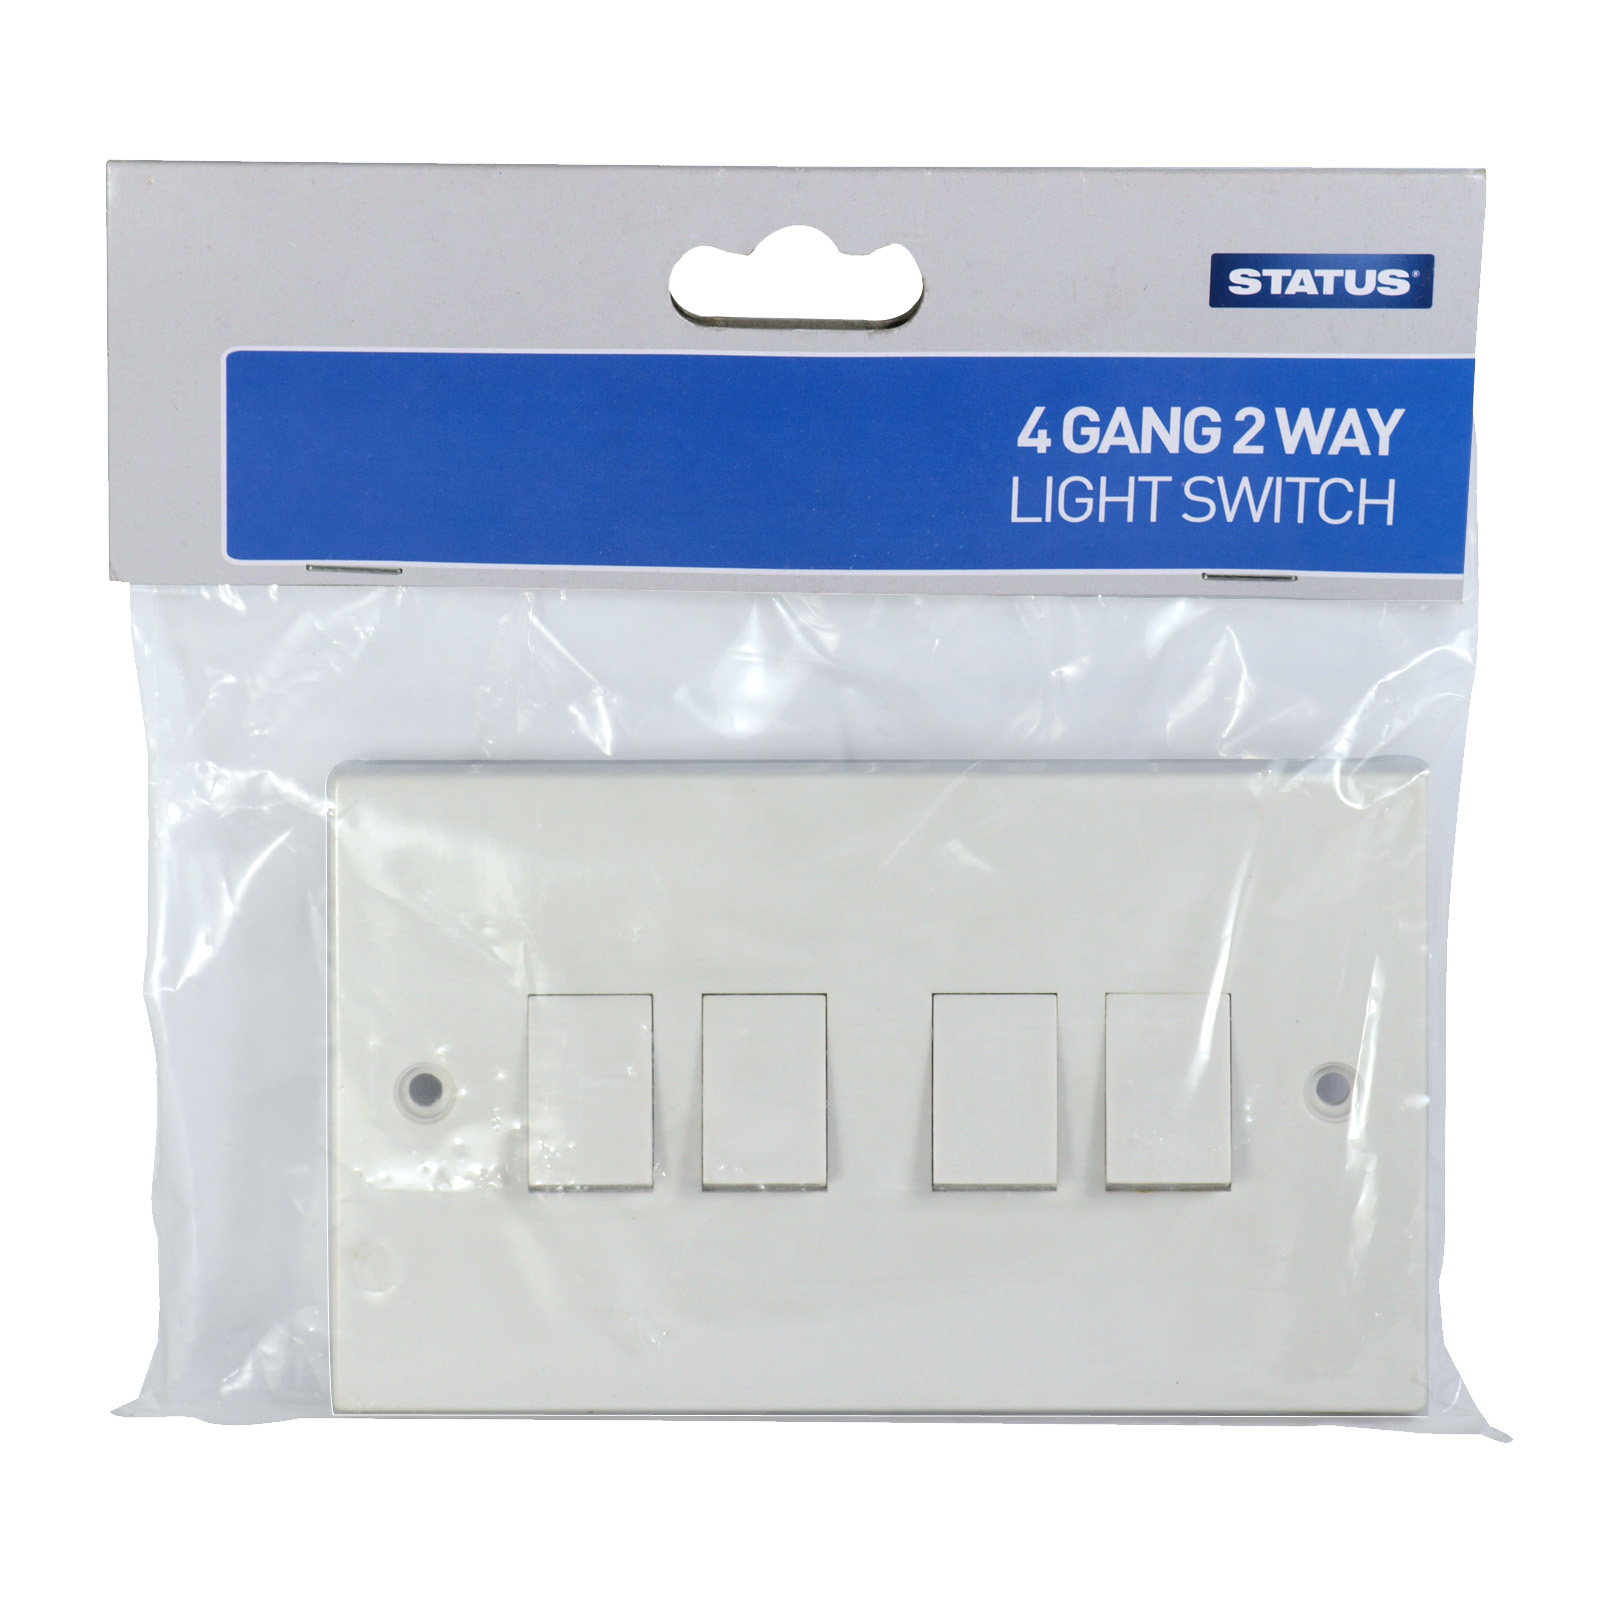 STATUS LIGHT SWITCH 4GANGX2WAY